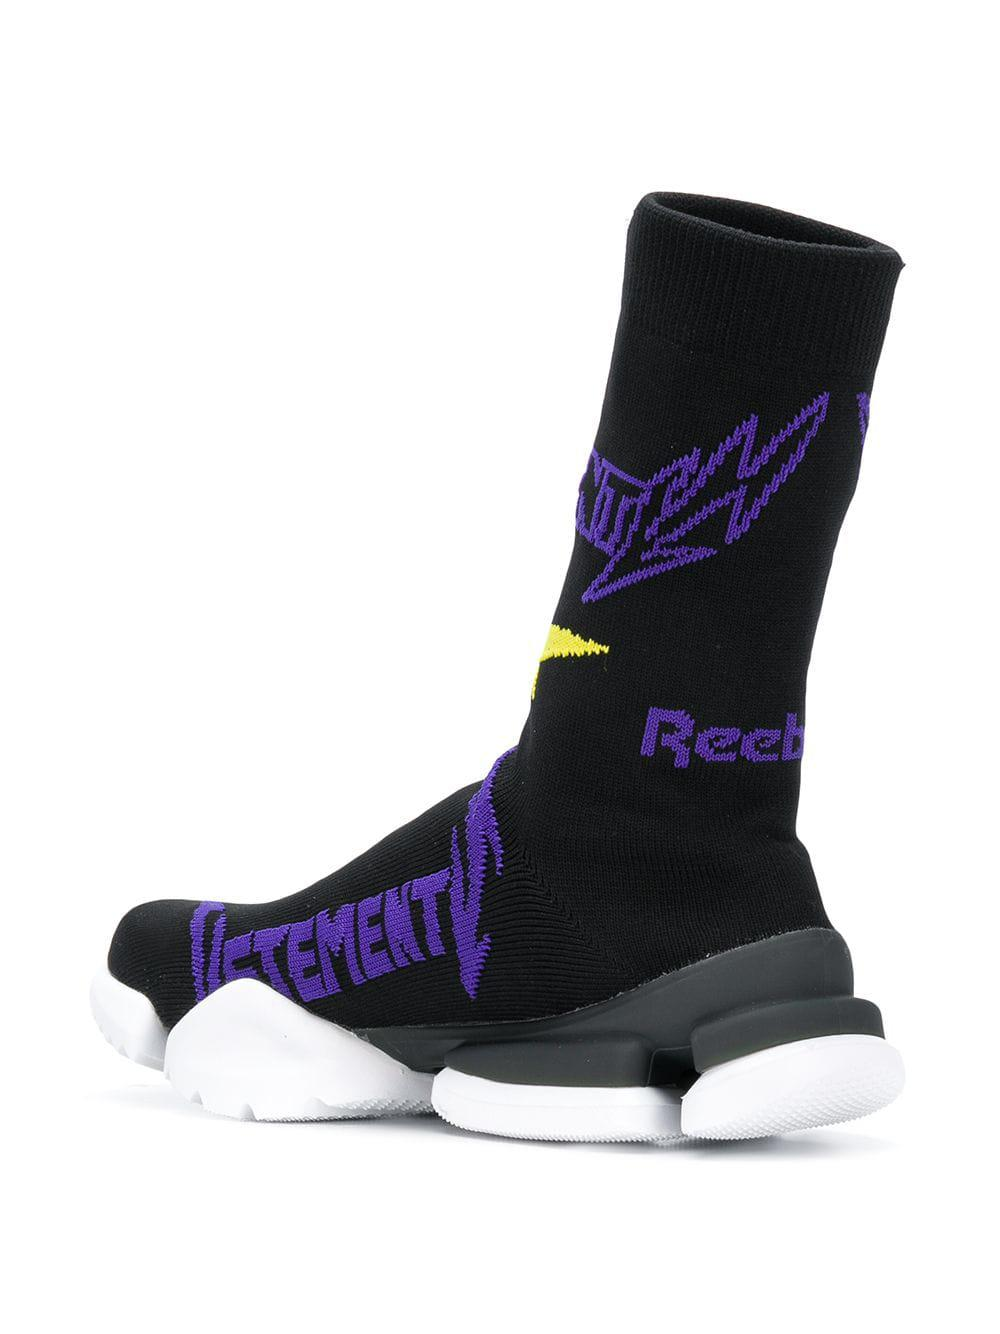 Vetements - Black Metal Sock Sneakers - Lyst. View fullscreen 5b2d2232d